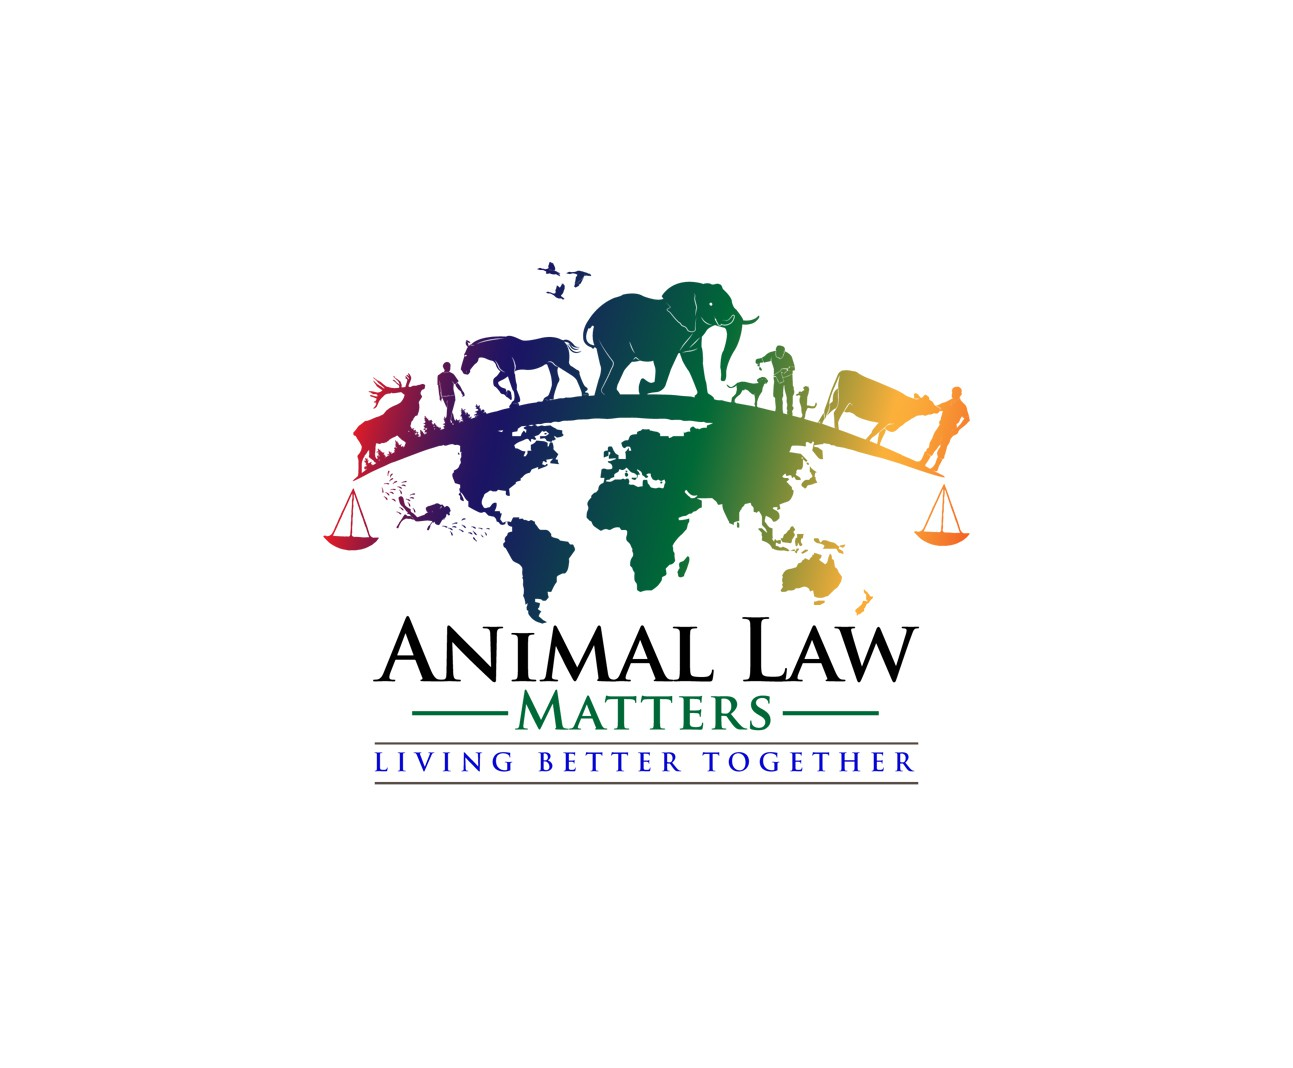 Animal Law Matters - corporate logo for registered charity